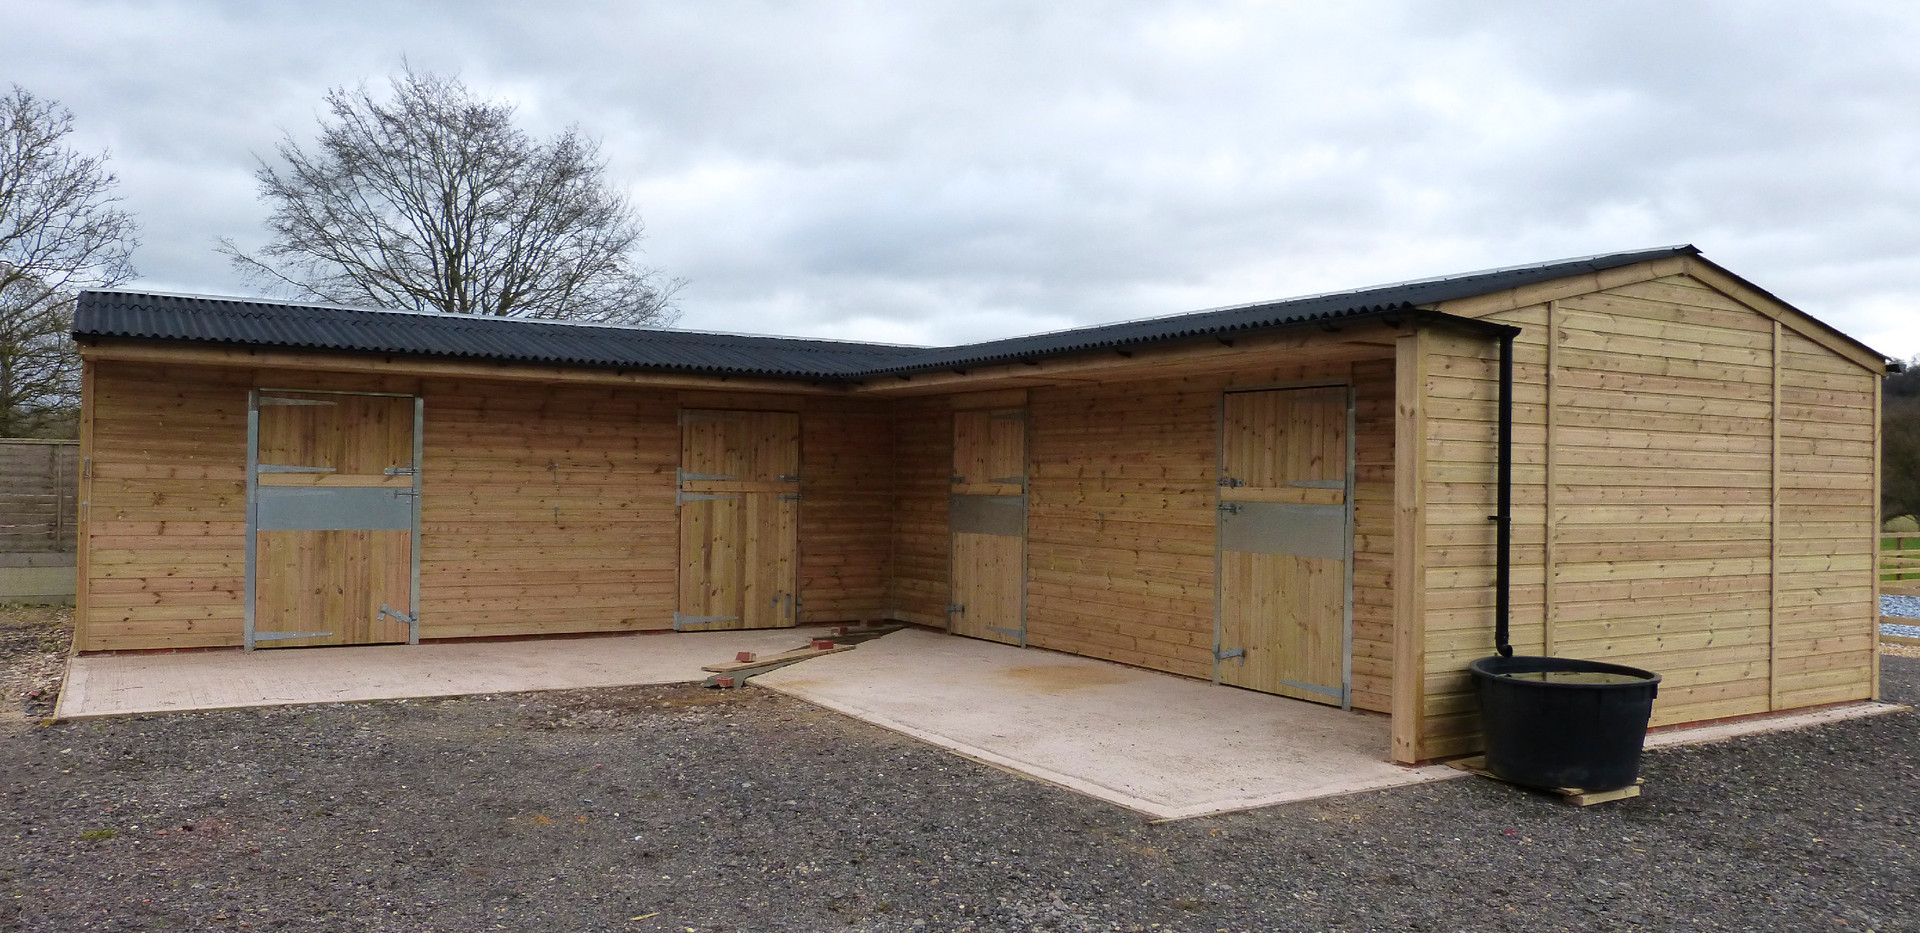 Front View of stable block_edited.jpg